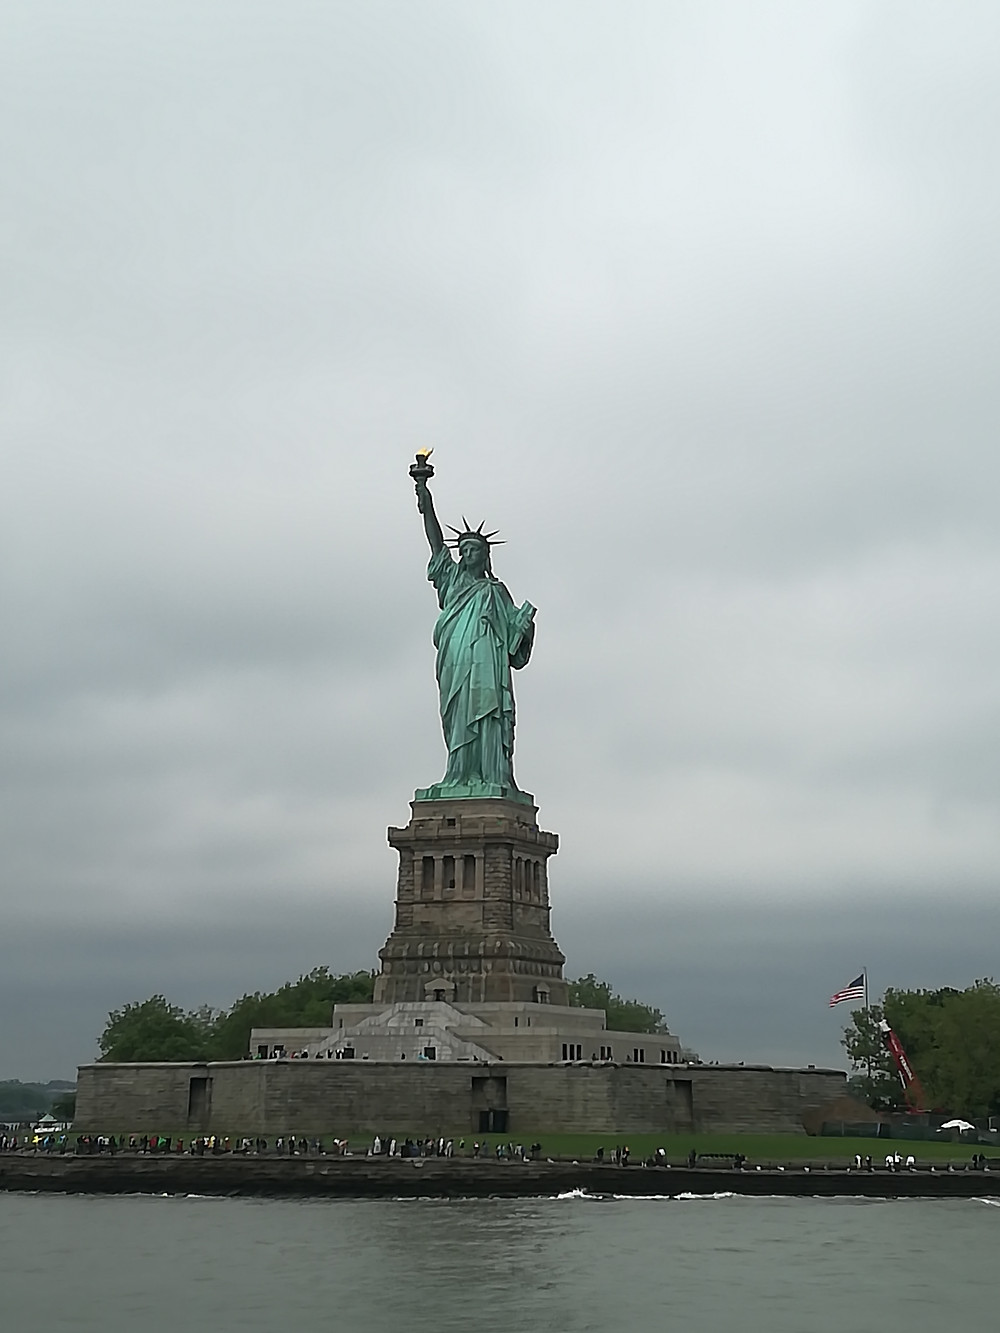 Statue of Liberty the iconic land mark of New York, USA